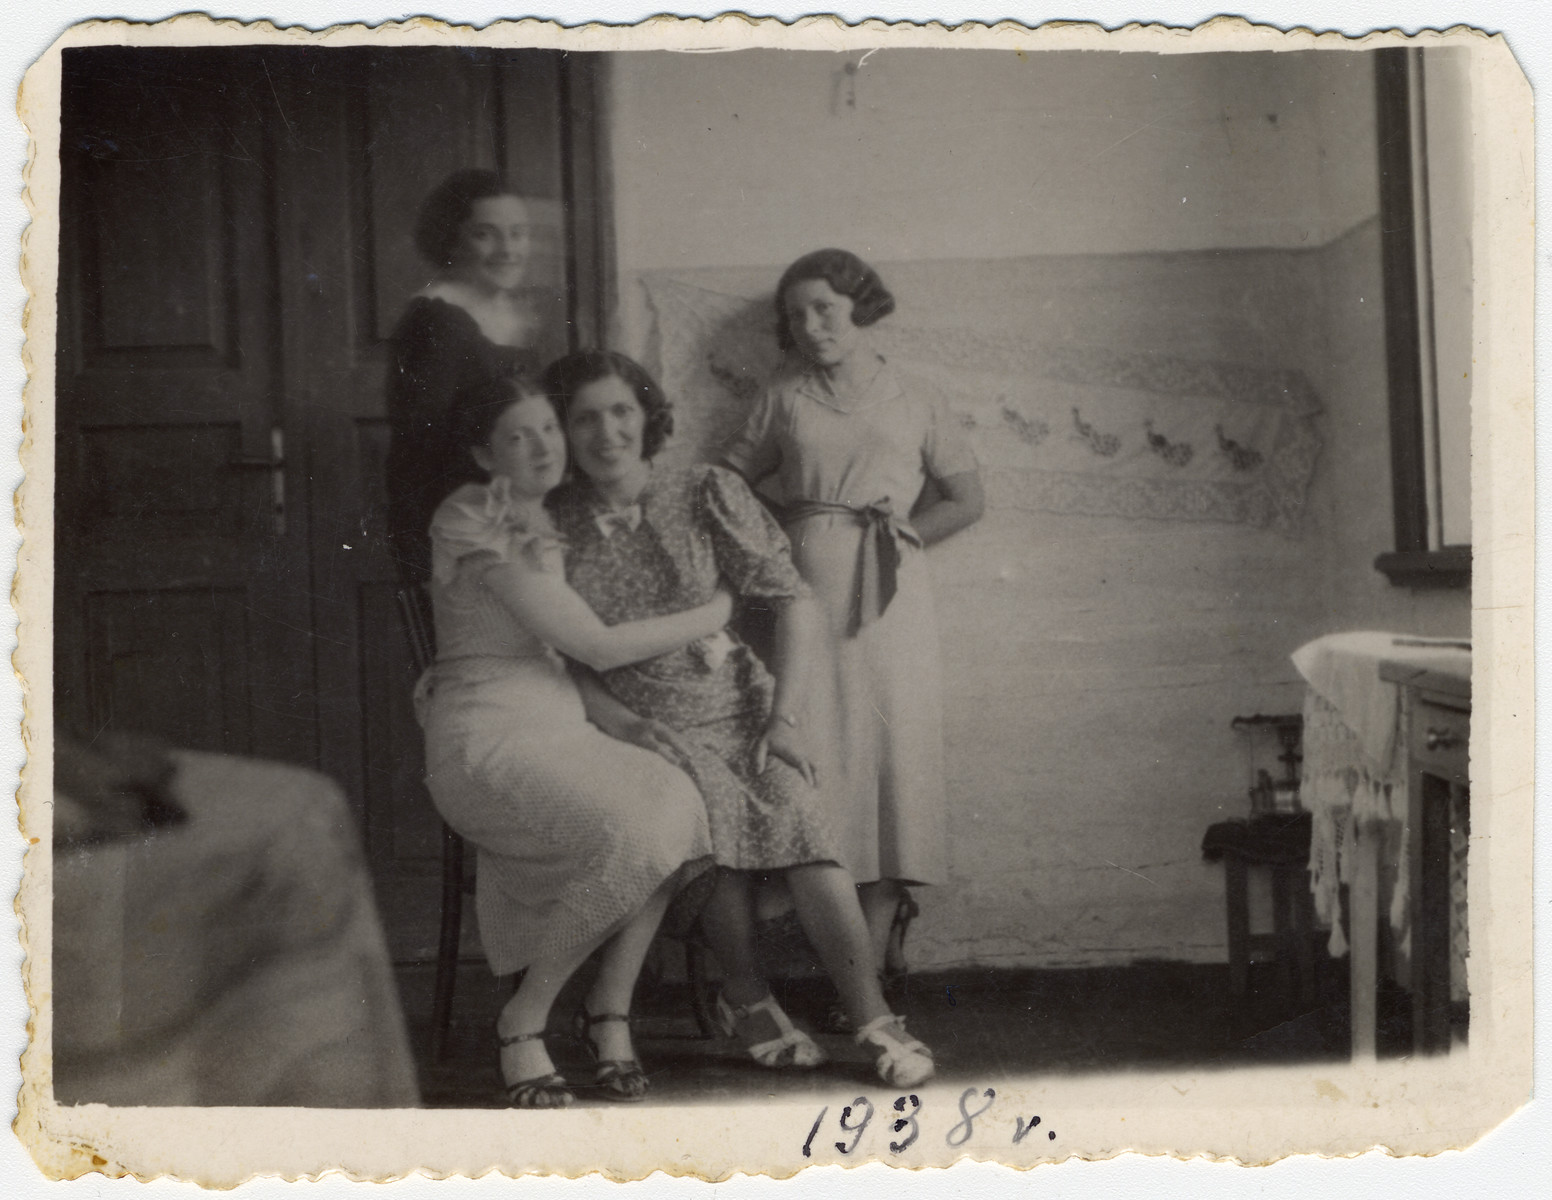 Portrait of four women in a home in Zetel.  Shanke Minuskin is pictured in the center with three friends.